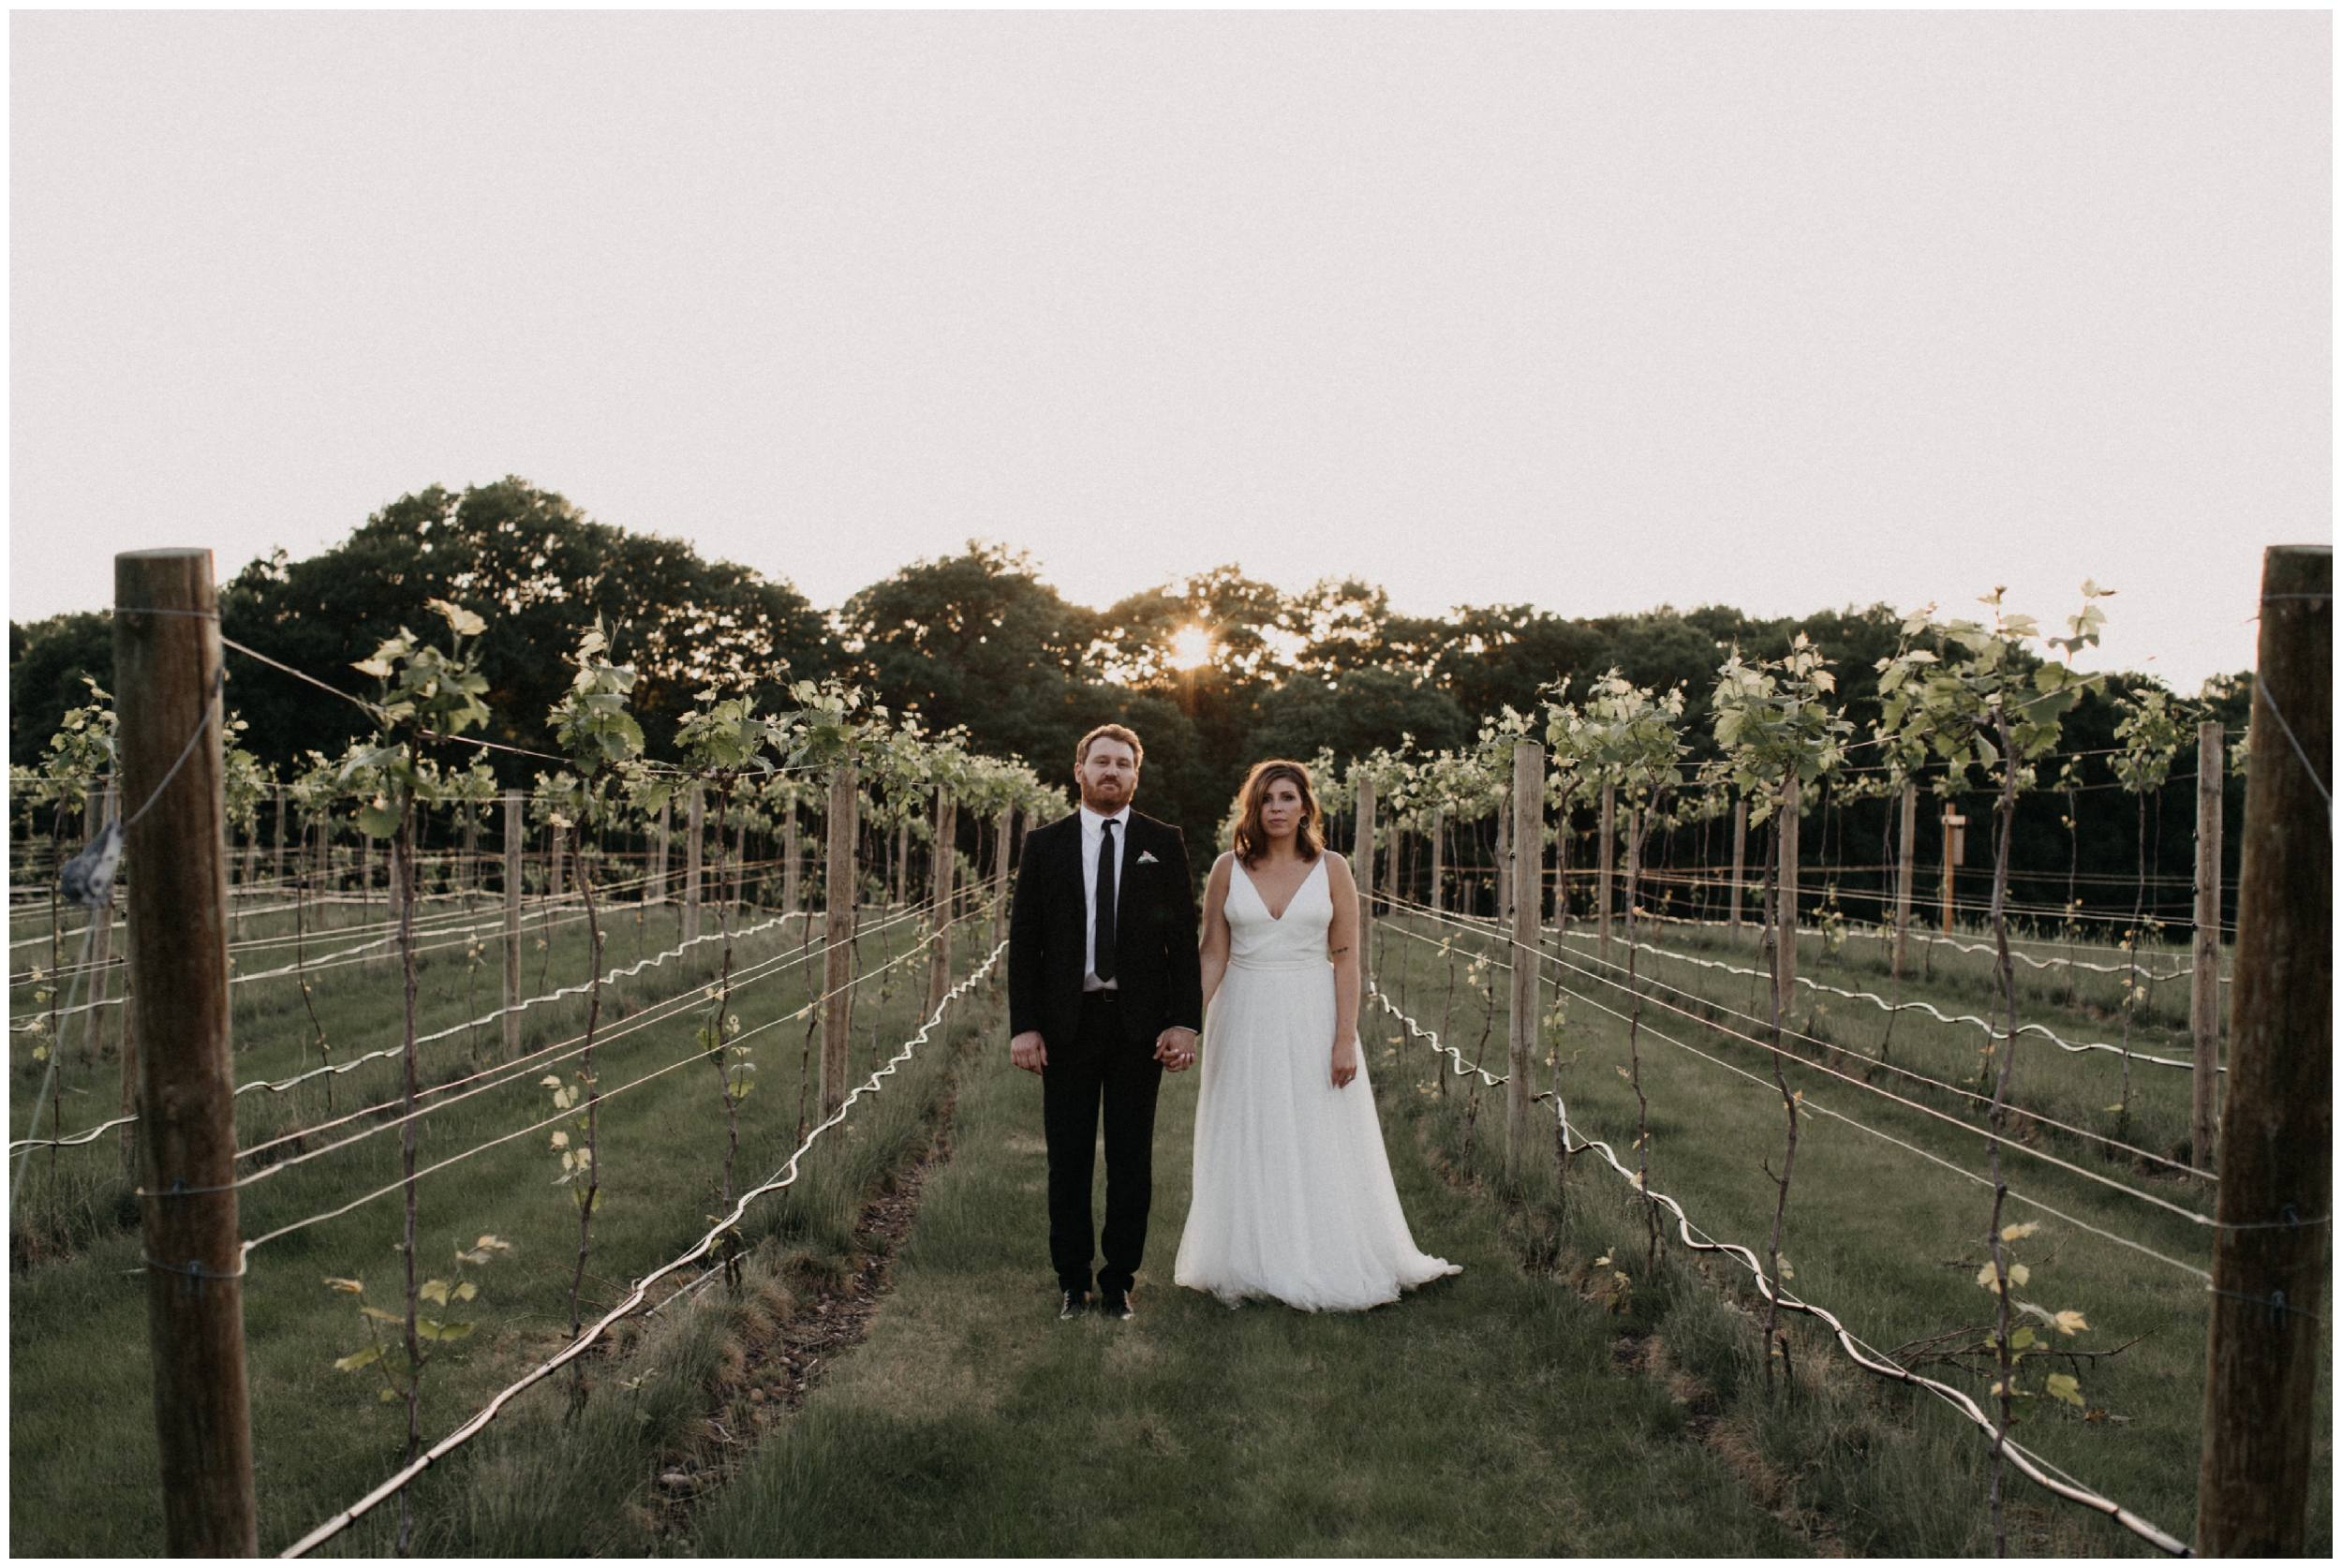 Vineyard wedding at 7 vines winery